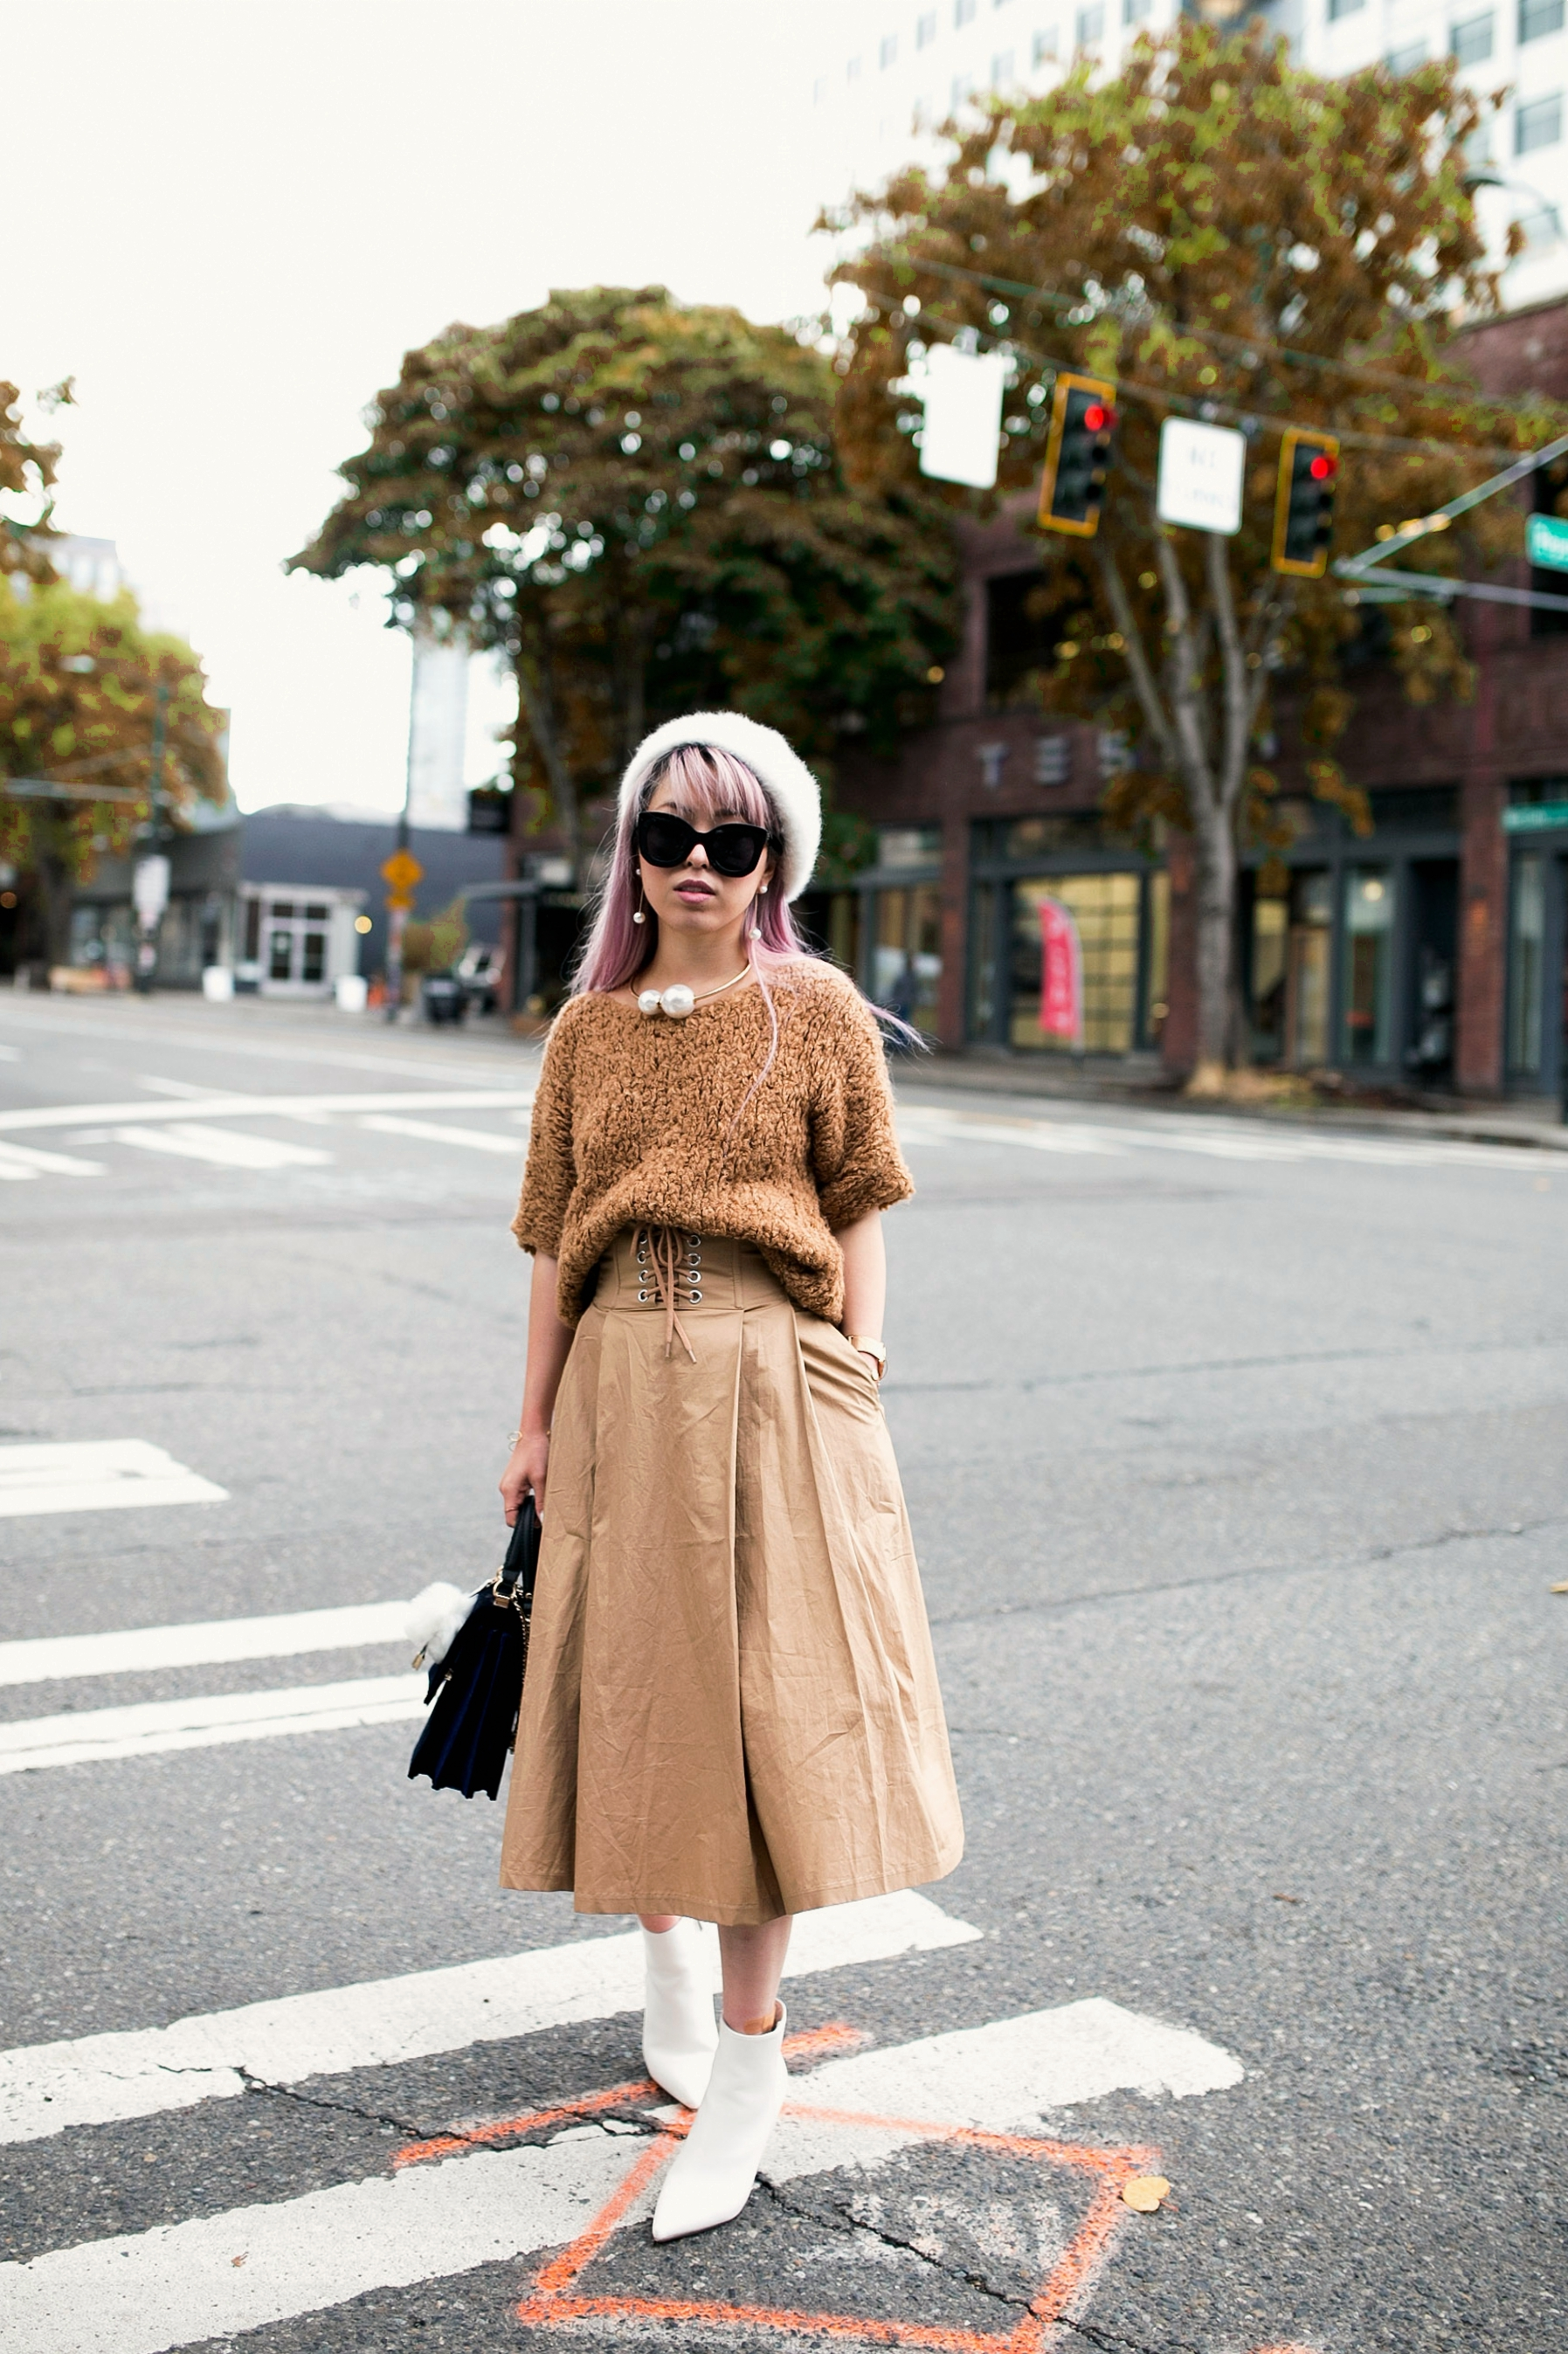 2L6A7732.jpgForever 21 Fluffy White Beret, Express Pearl Collar Necklace, Thrifted Teddy Camel Top, H&M High-waisted camel midi skirt, zara velvet bag, Forever 21 White Ankle Boots, Aika's Love Closet, Seattle Fashion Style Blogger, Japanese, pink hair, street style, petite fashion  11